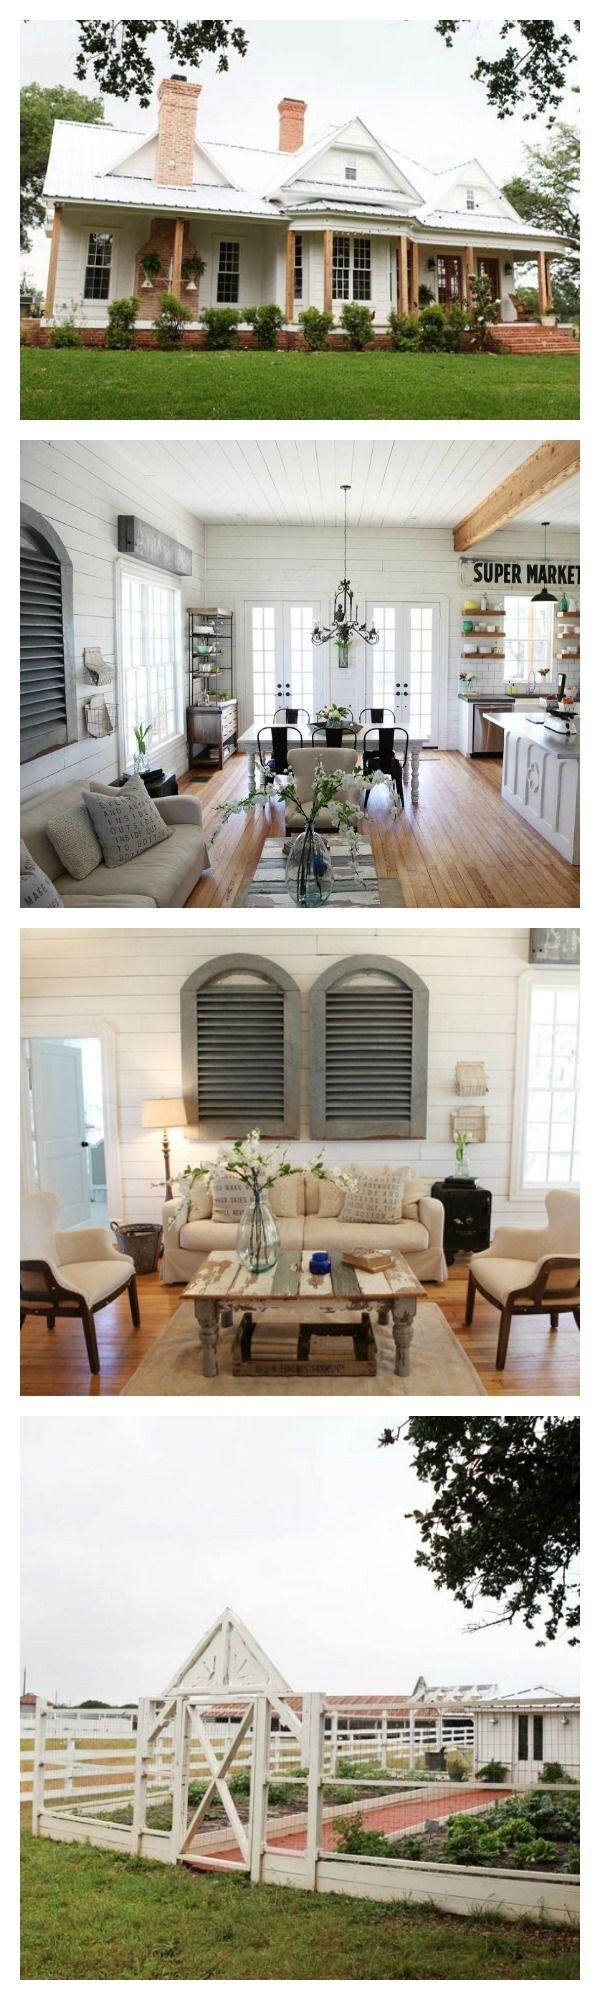 289 Best Images About Home Ideas Inspirations On